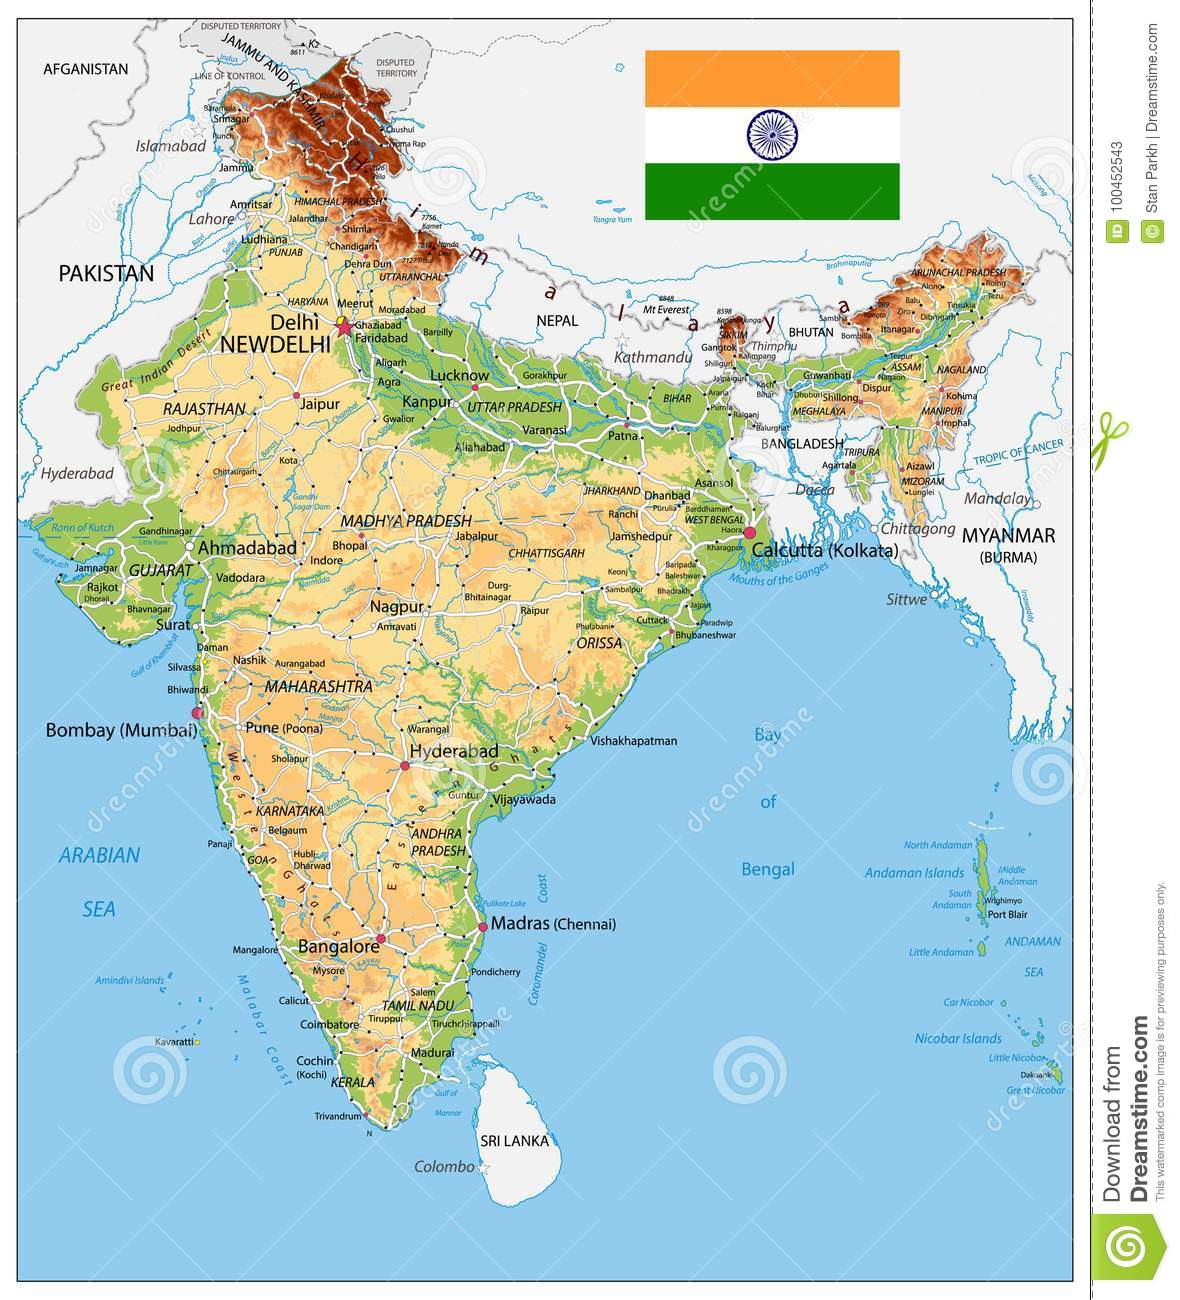 India Physical Map stock vector. Illustration of relief ... on goa india, physical map cyprus, physical map myanmar, rivers of india, capital of india, physical map somalia, northern plains of india, national flower of india, landforms in india, deccan plateau india, location and geography of india, ganges river india, economy of india, region of india, mumbai india, europe map from nepal india, indus river in india, physical features map, chennai india, maps of only india,